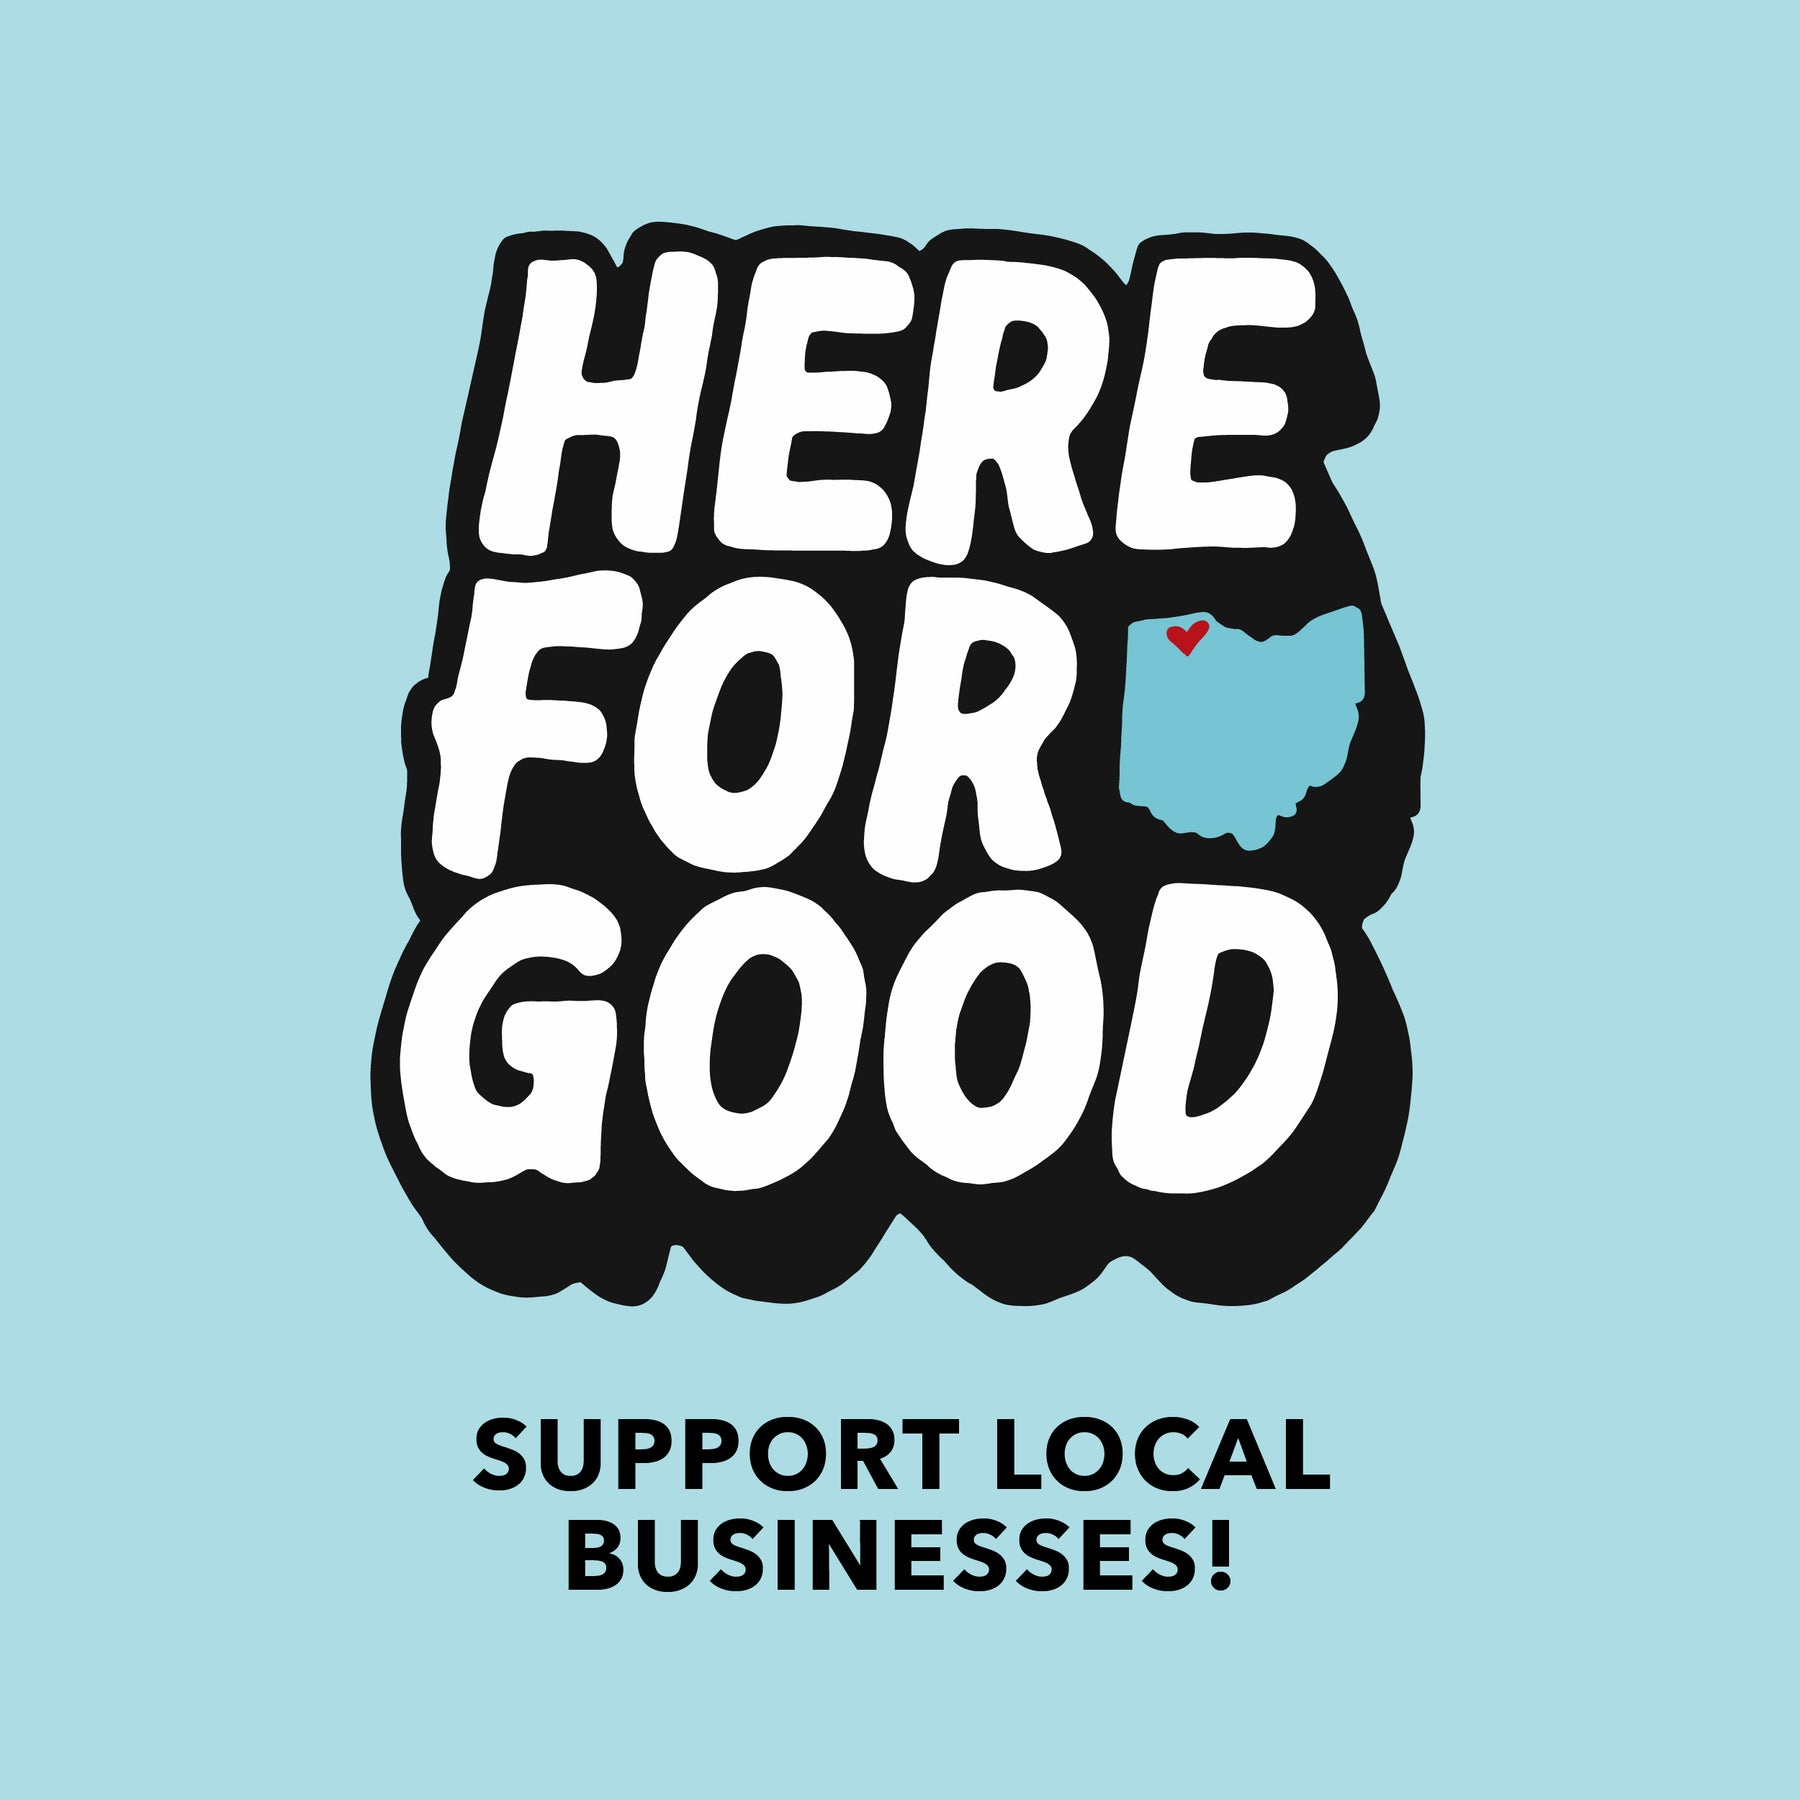 Helping Small Businesses Stay Here For Good